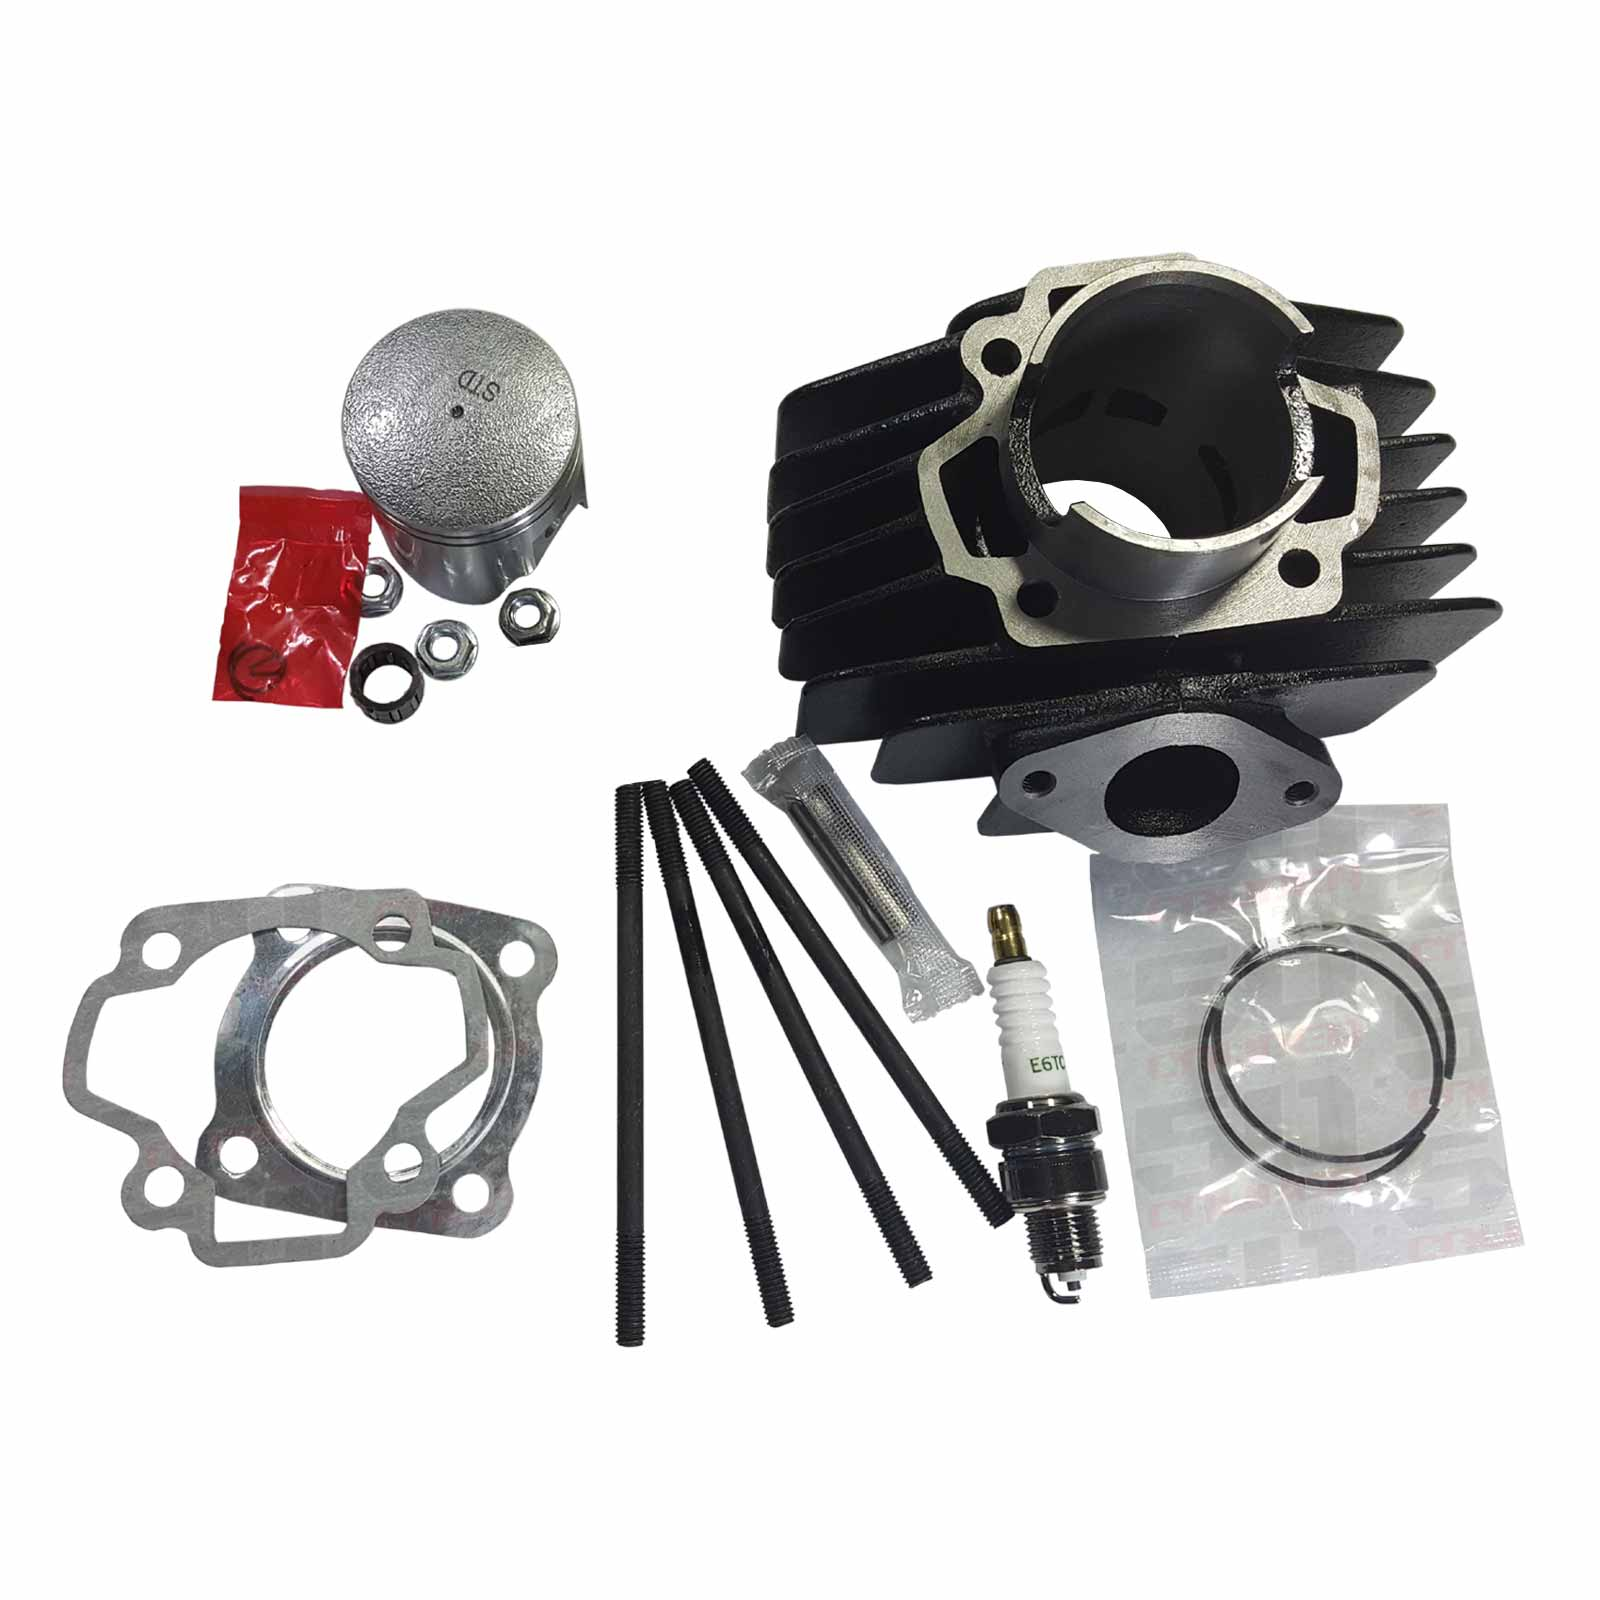 2002 Lincoln Continental Head Gasket: Yamaha PW50 60cc Big Bore Top End Cylinder Kit 2003 2002